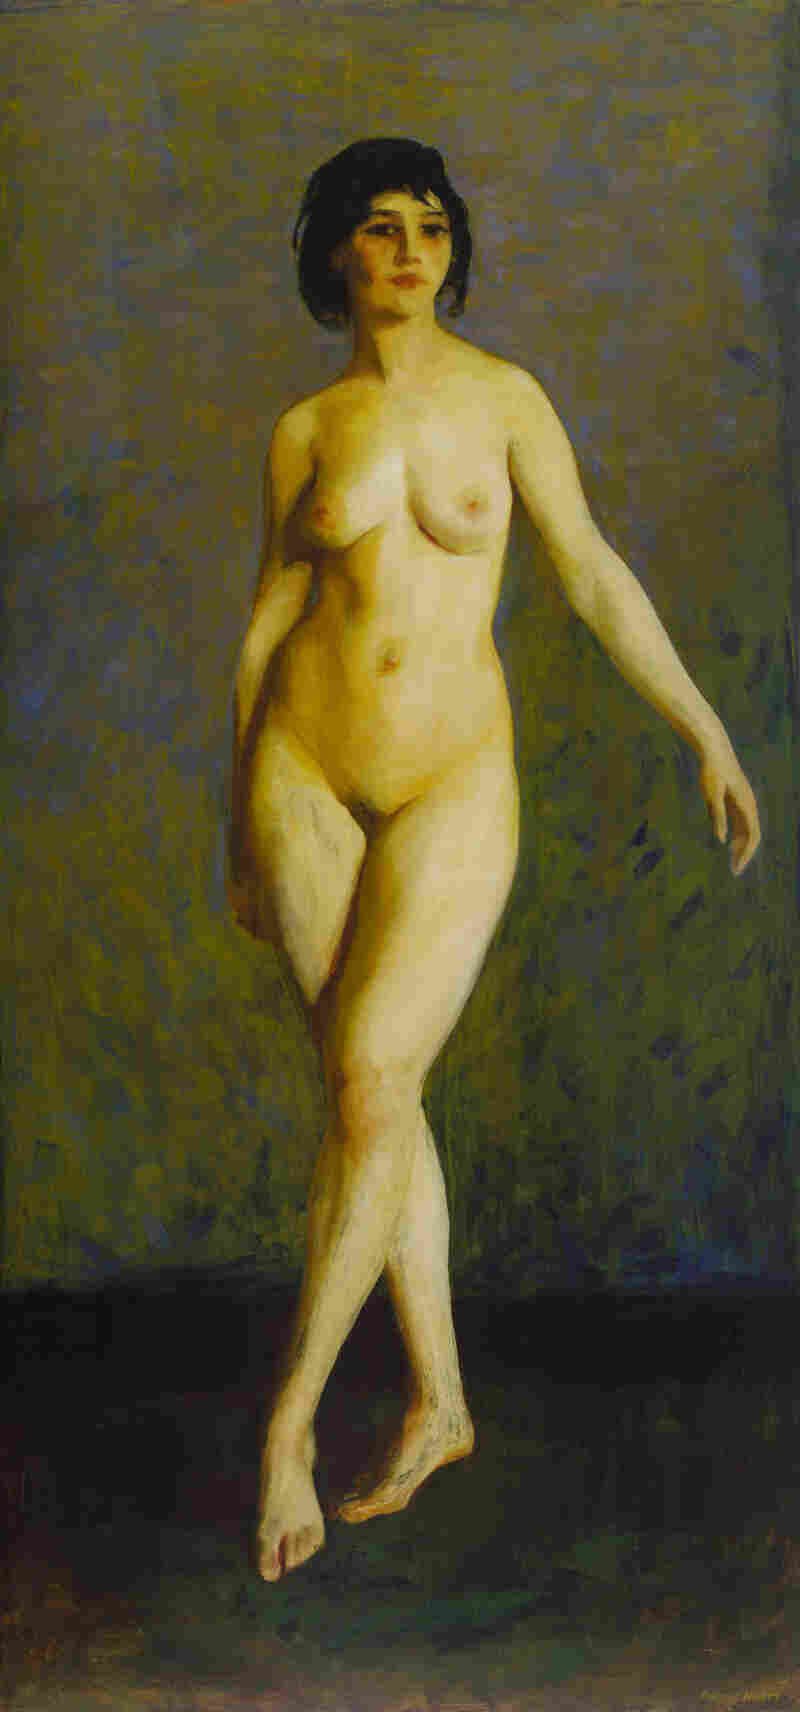 Robert Henri's 1913 Figure in Motion was a realistic, but bold response to Matisse's and Duchamp's nudes.